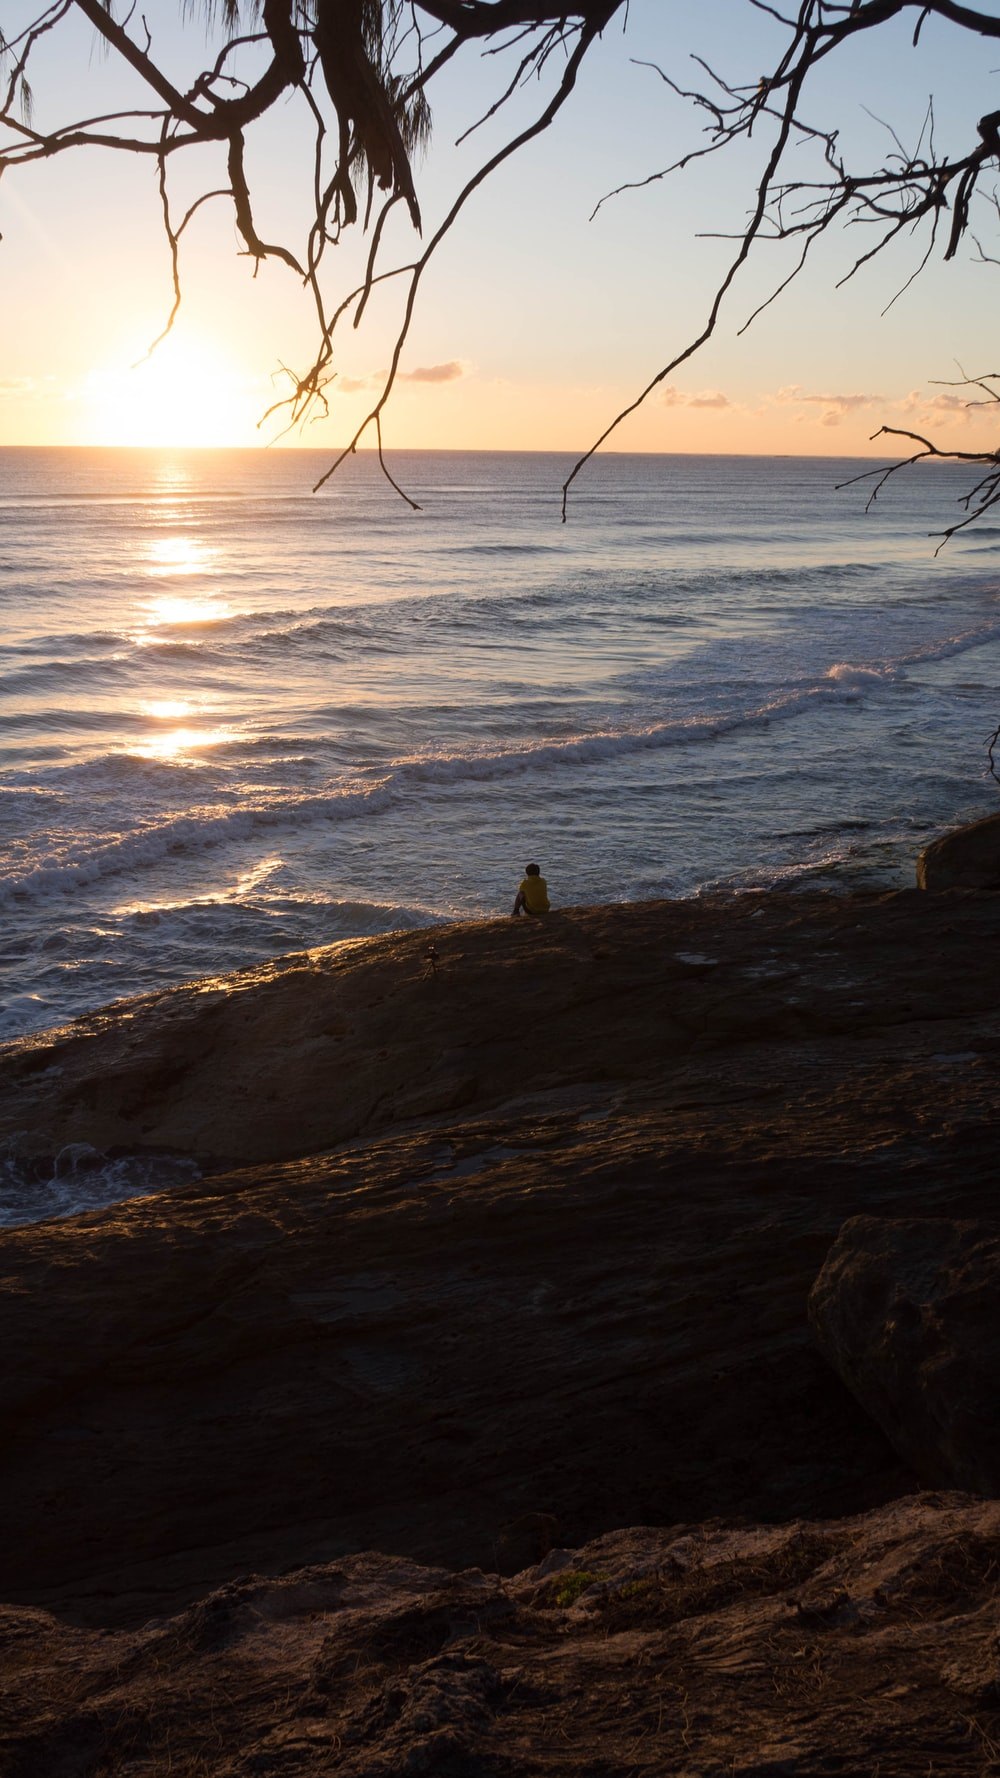 person sitting on rock near sea during daytime